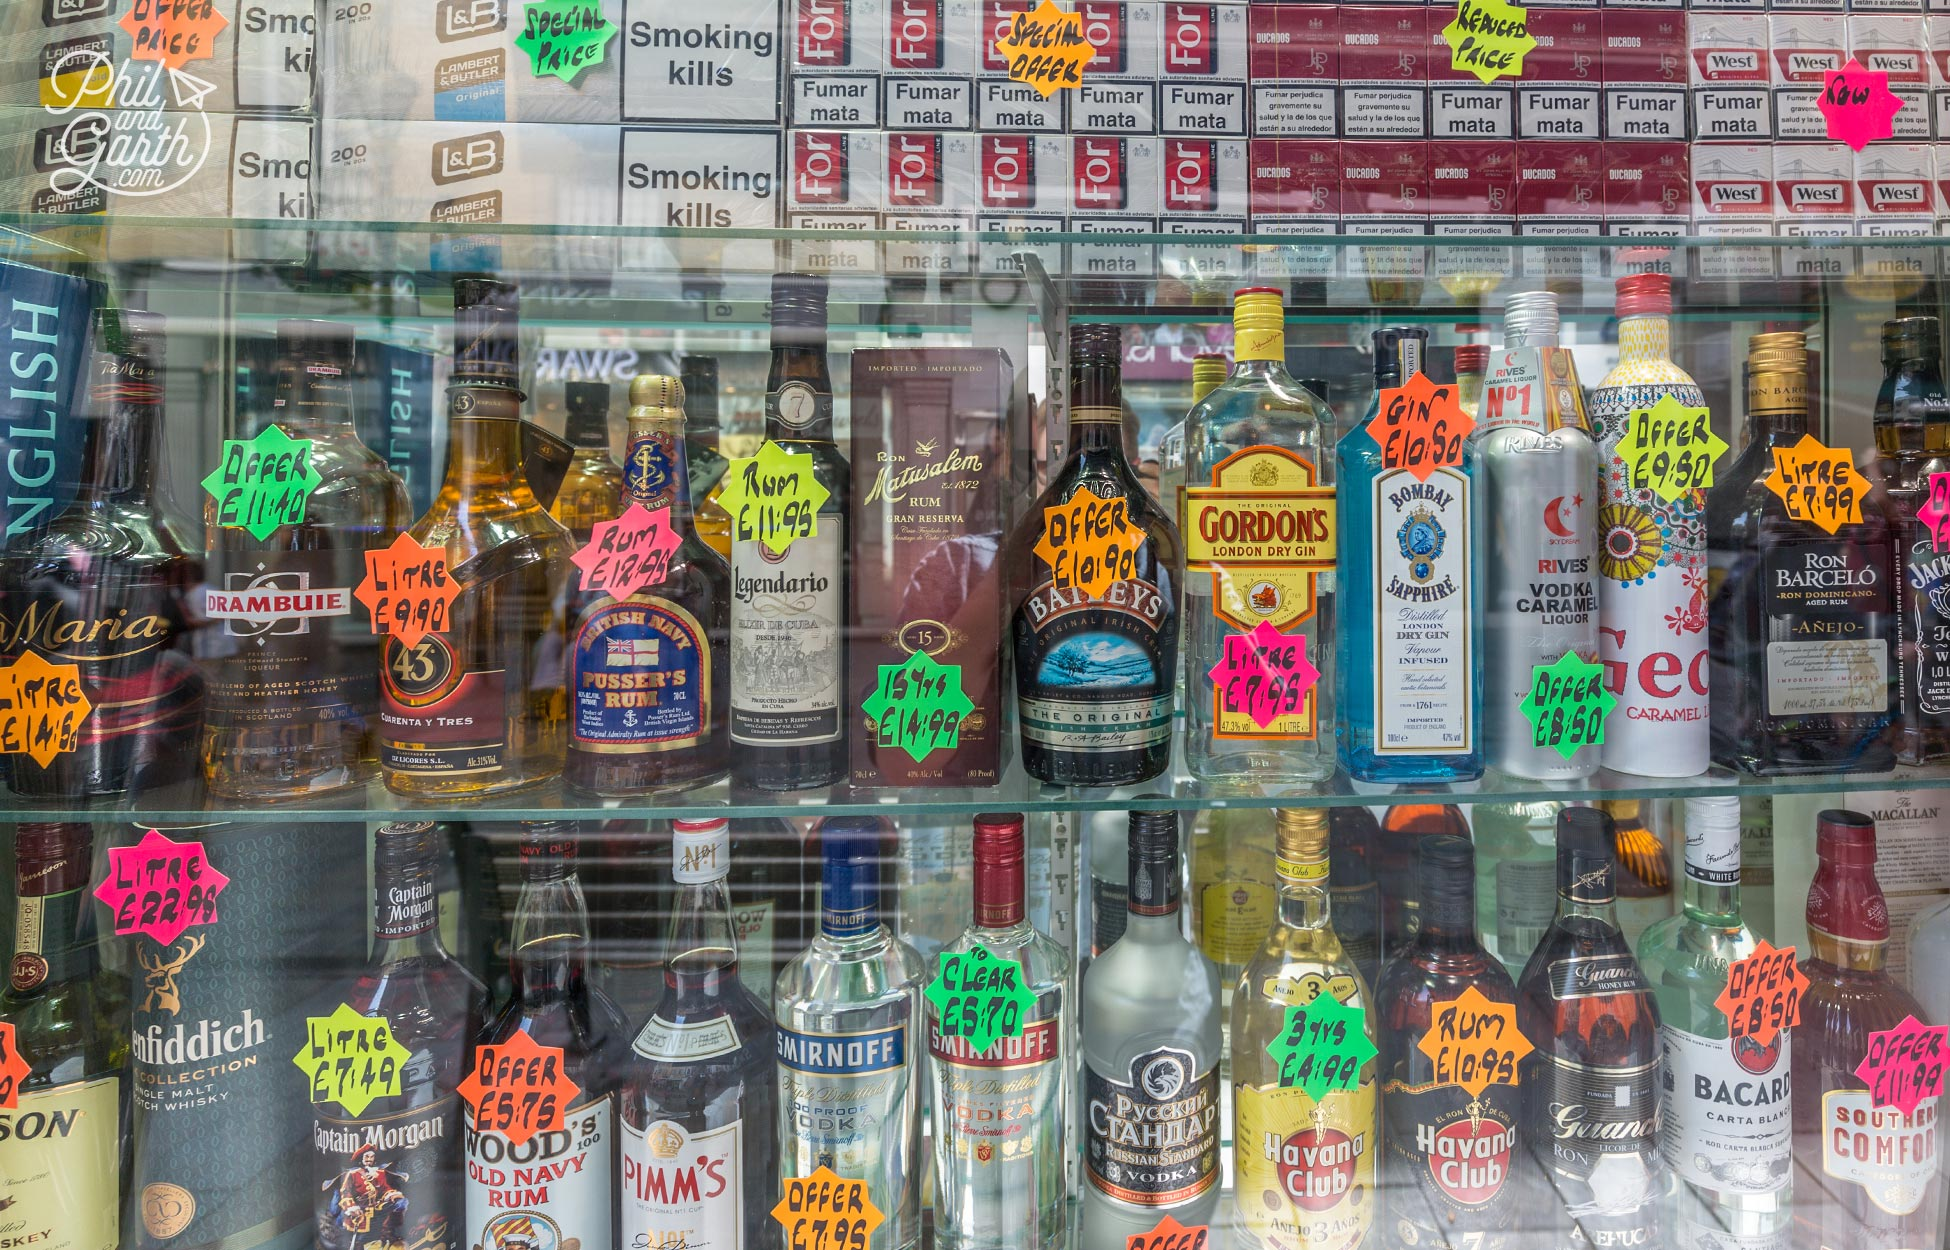 Cheap booze and fags for sale on Main Street